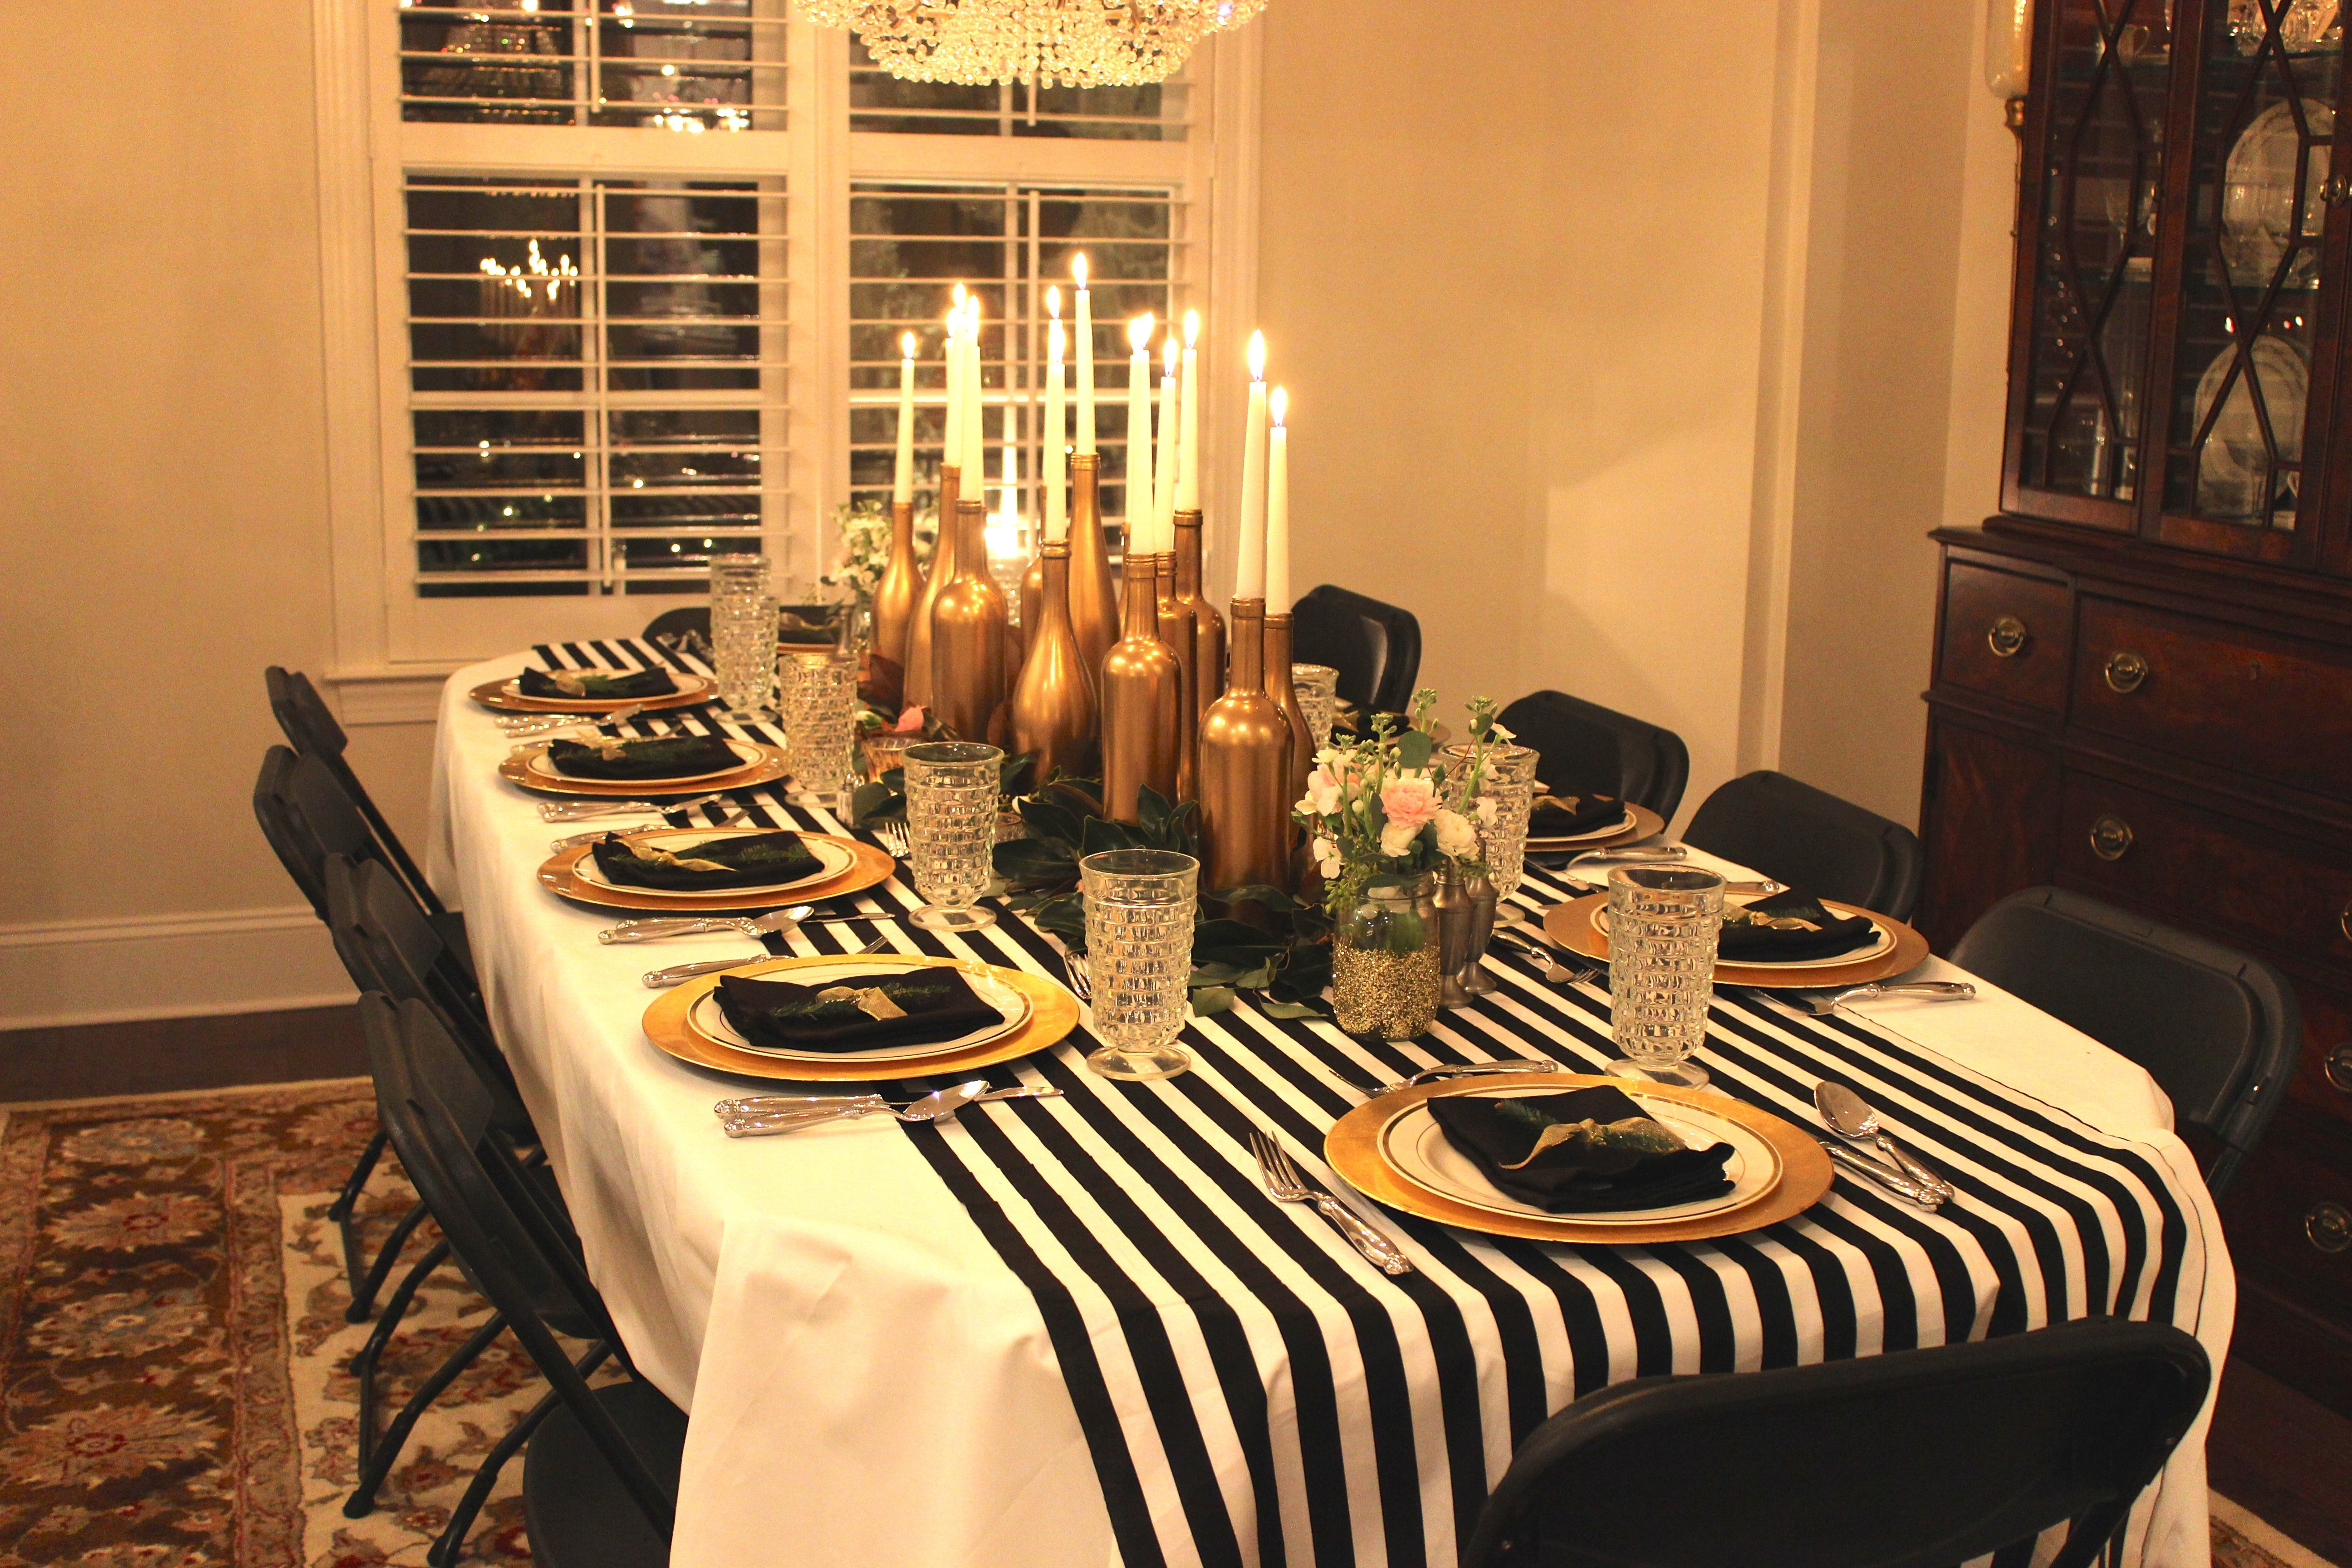 Best ideas about Black And Gold Birthday Decorations . Save or Pin Gold Black and White My 30th Birthday Dinner Party Now.